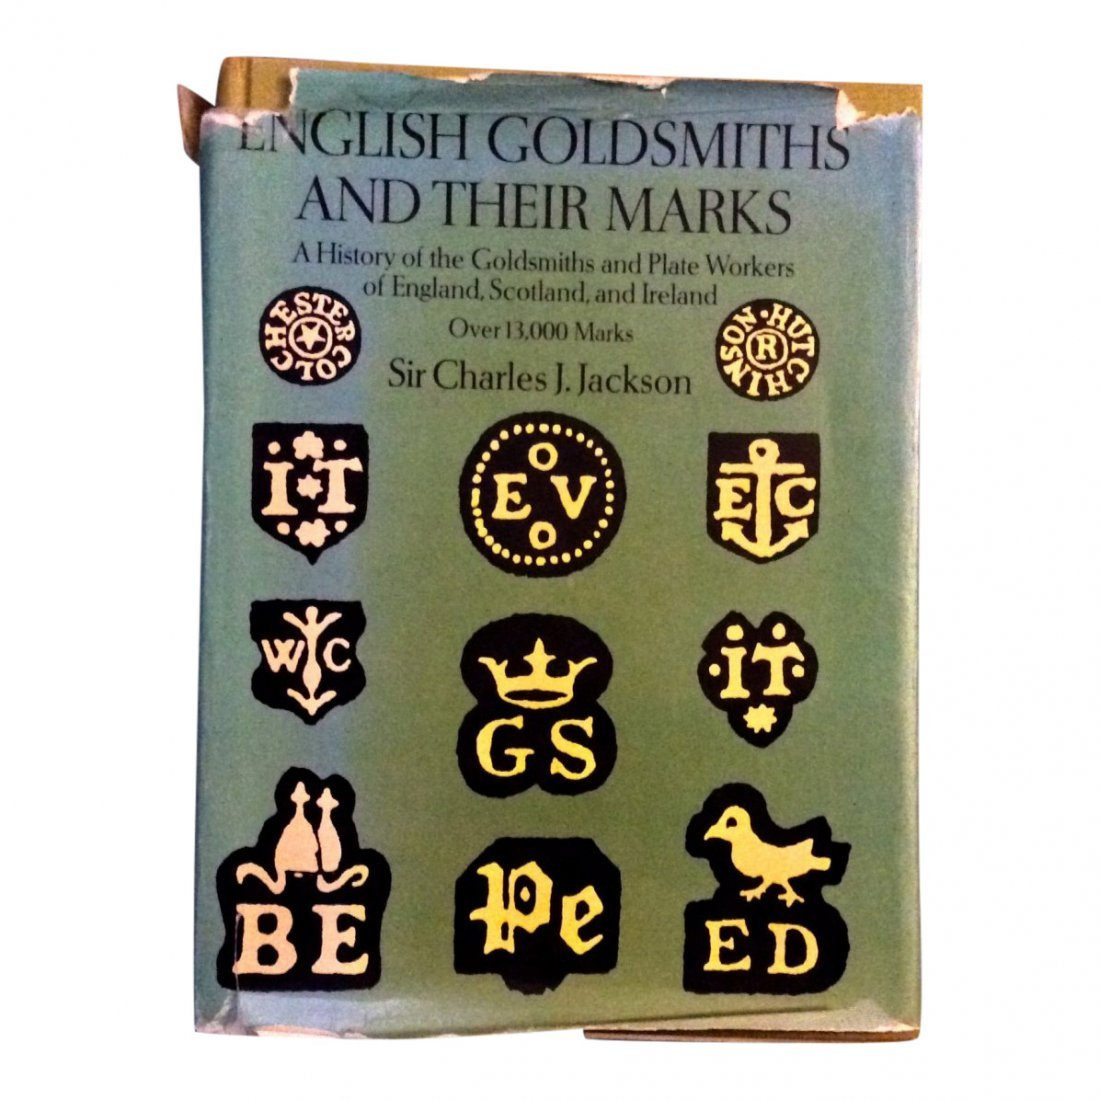 English Goldsmiths and Their Marks, 1970's